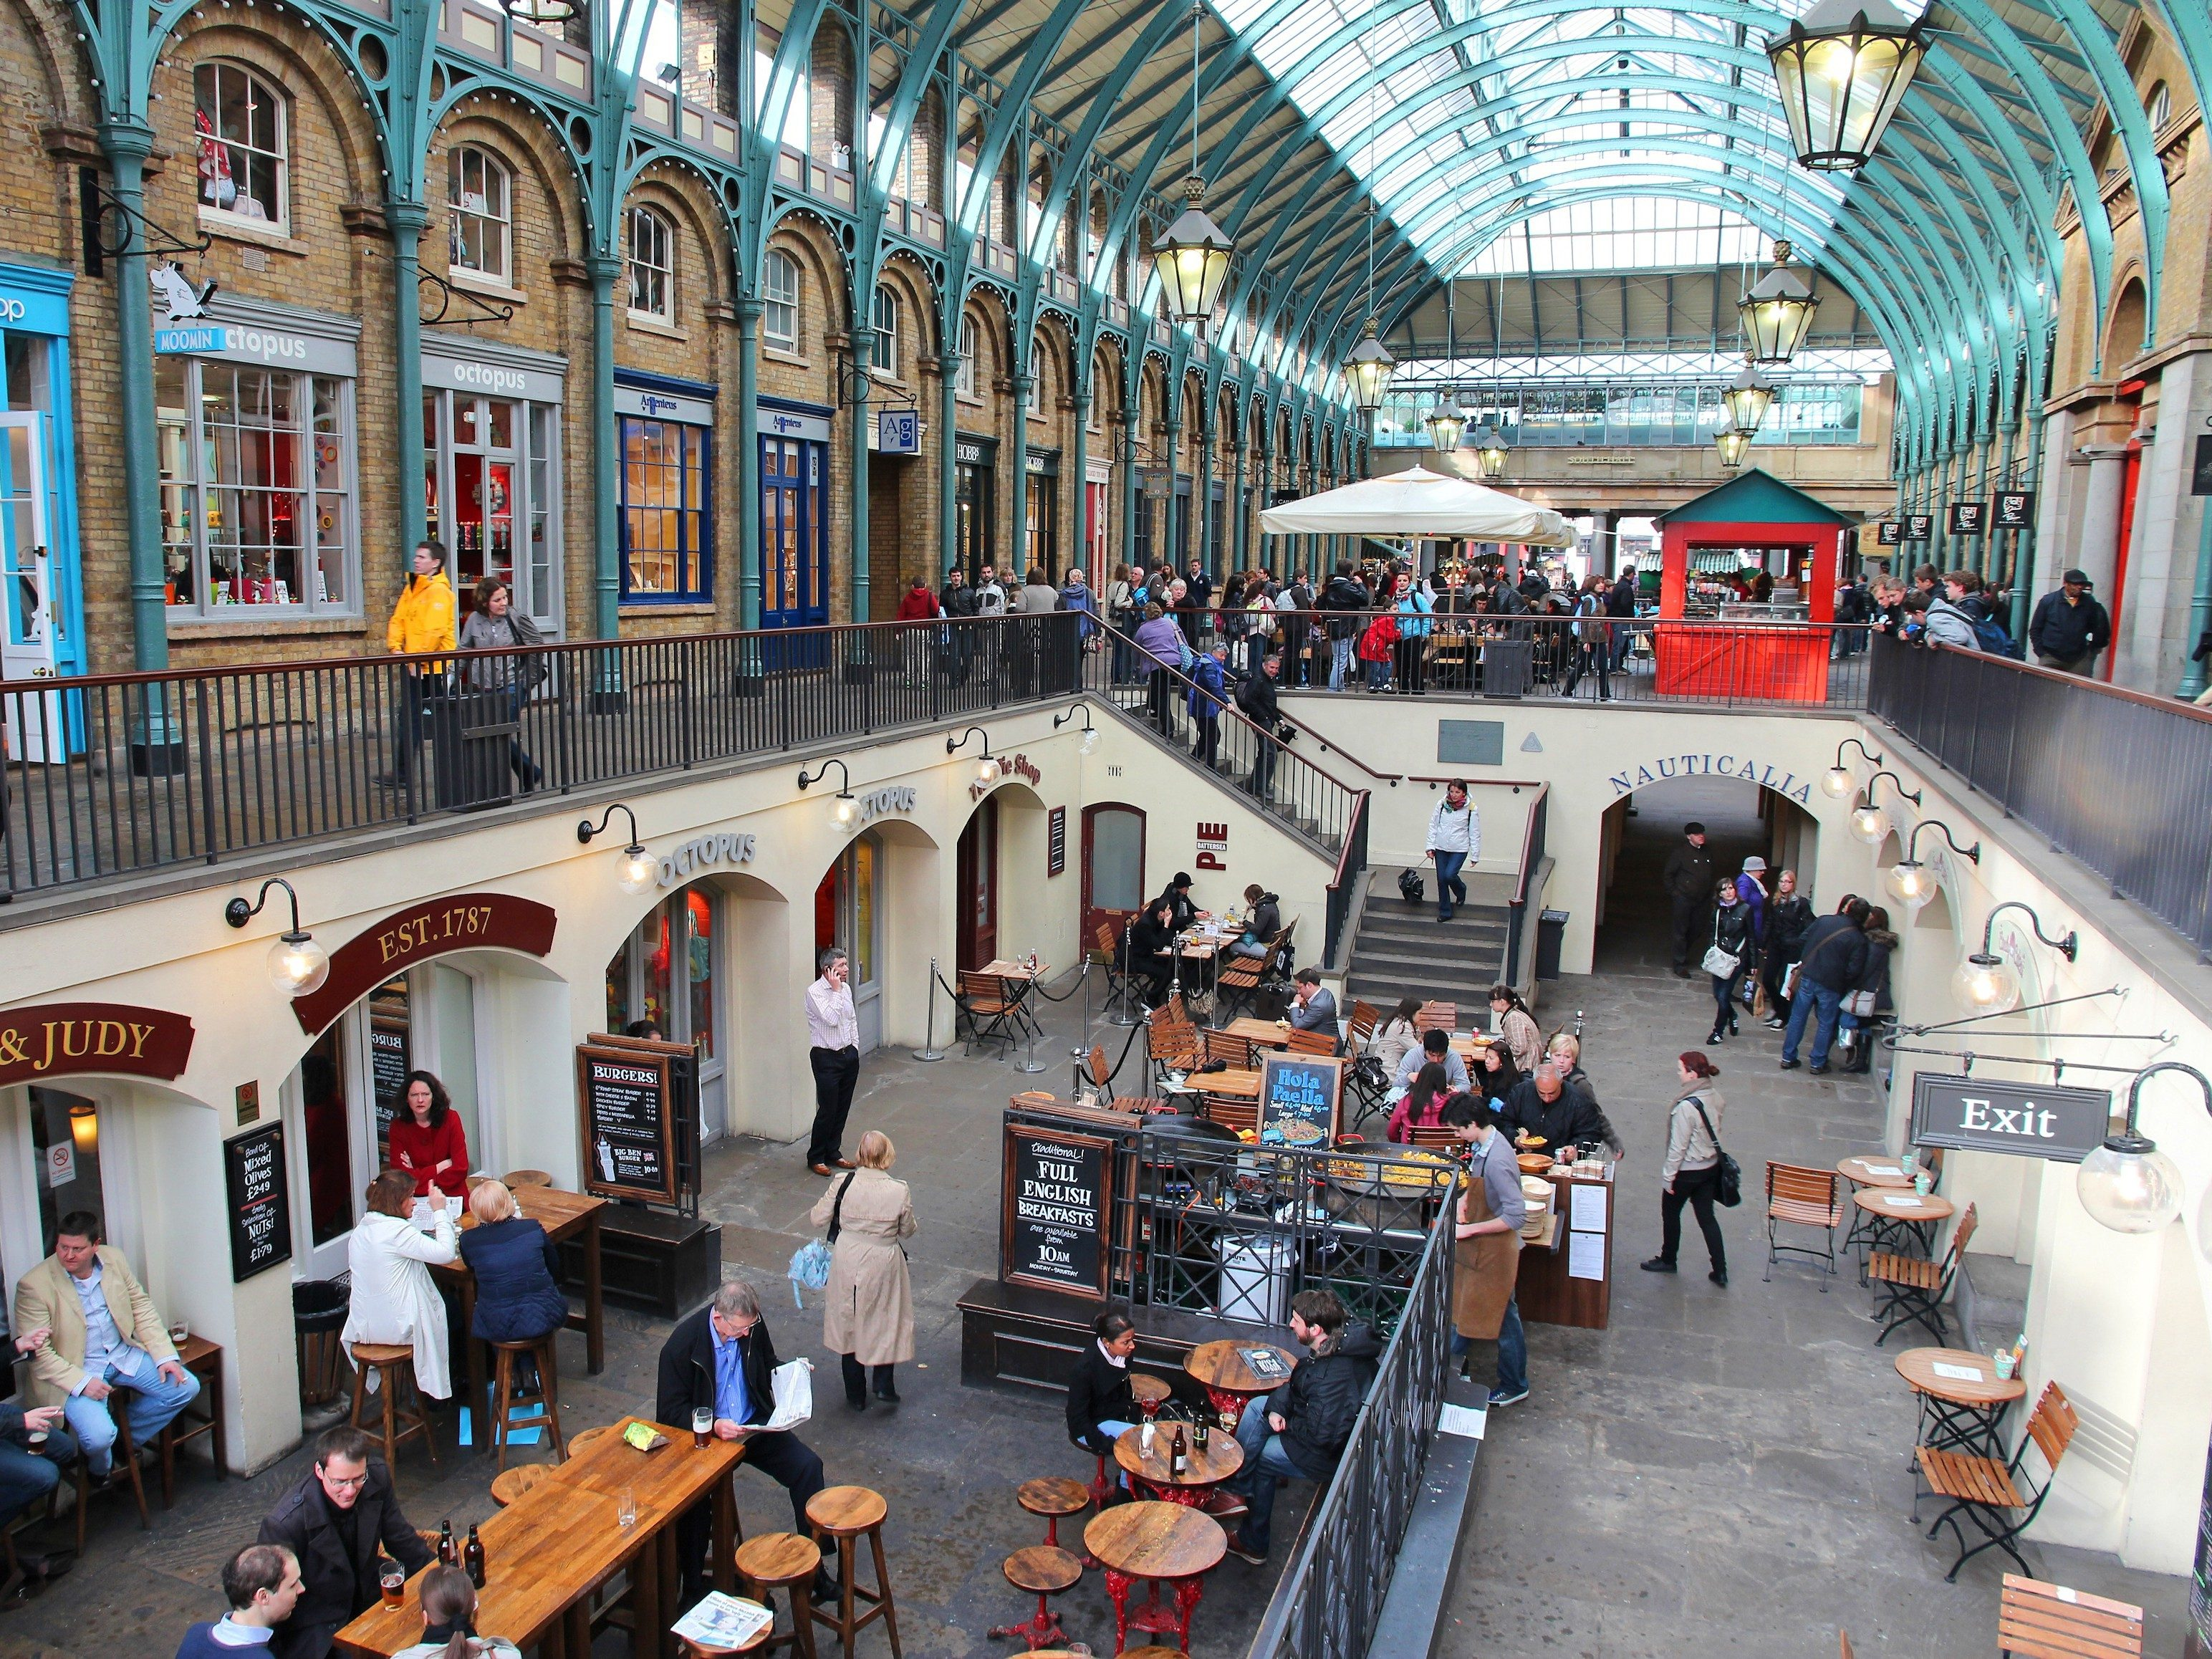 London attractions: Covent Garden